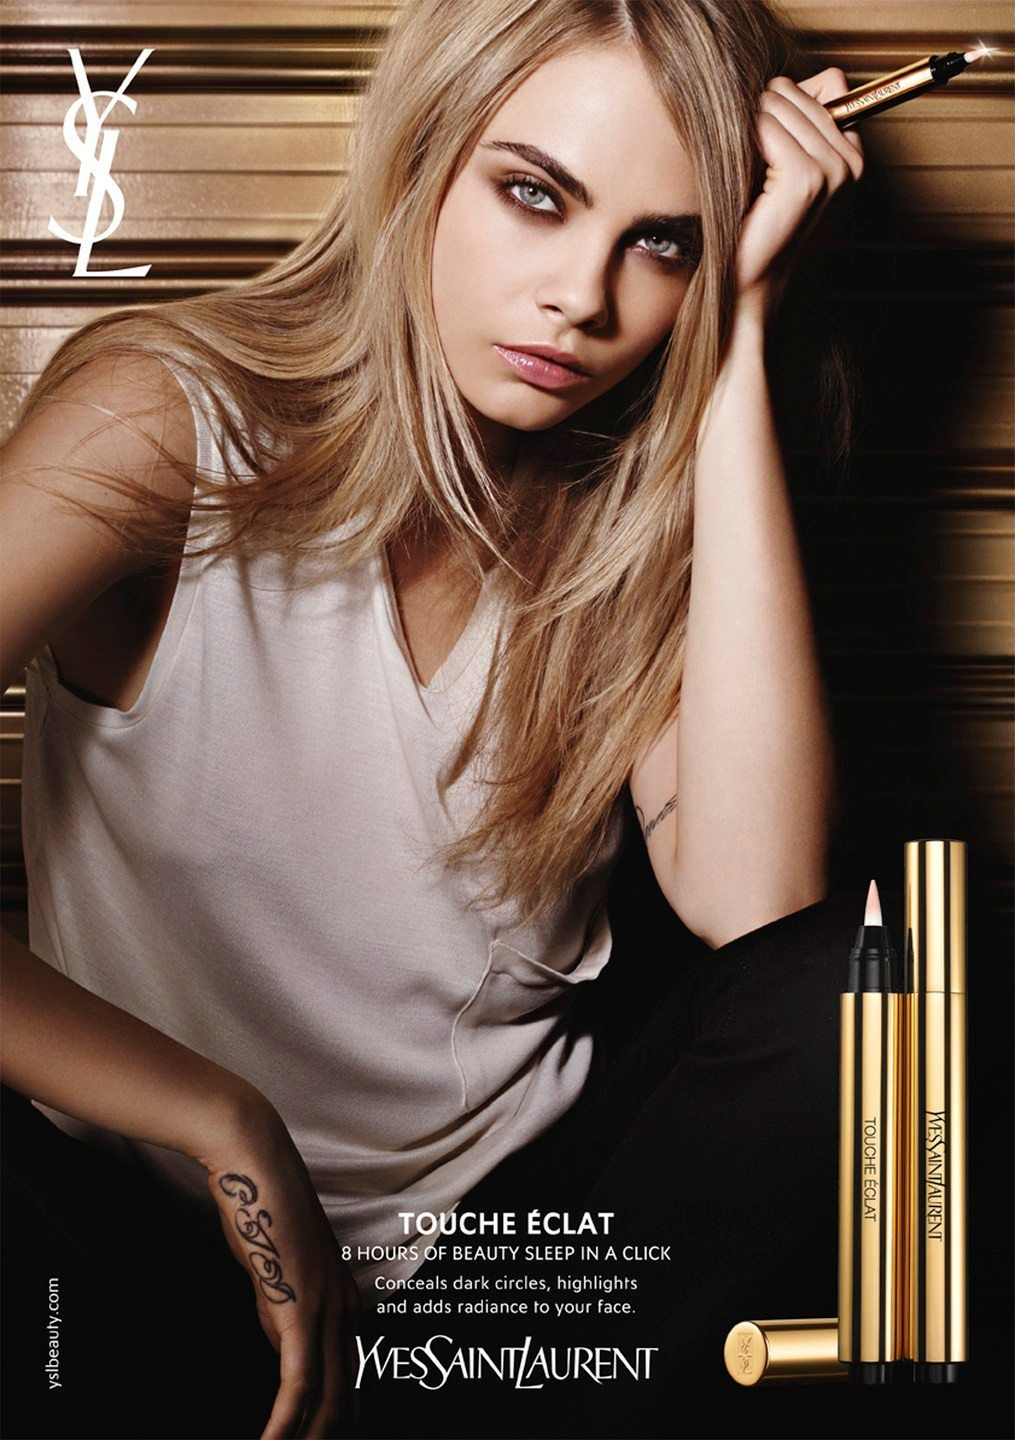 picture Cara Delevingne's New YSL Ad Will Make You Ditch Your OldMascara